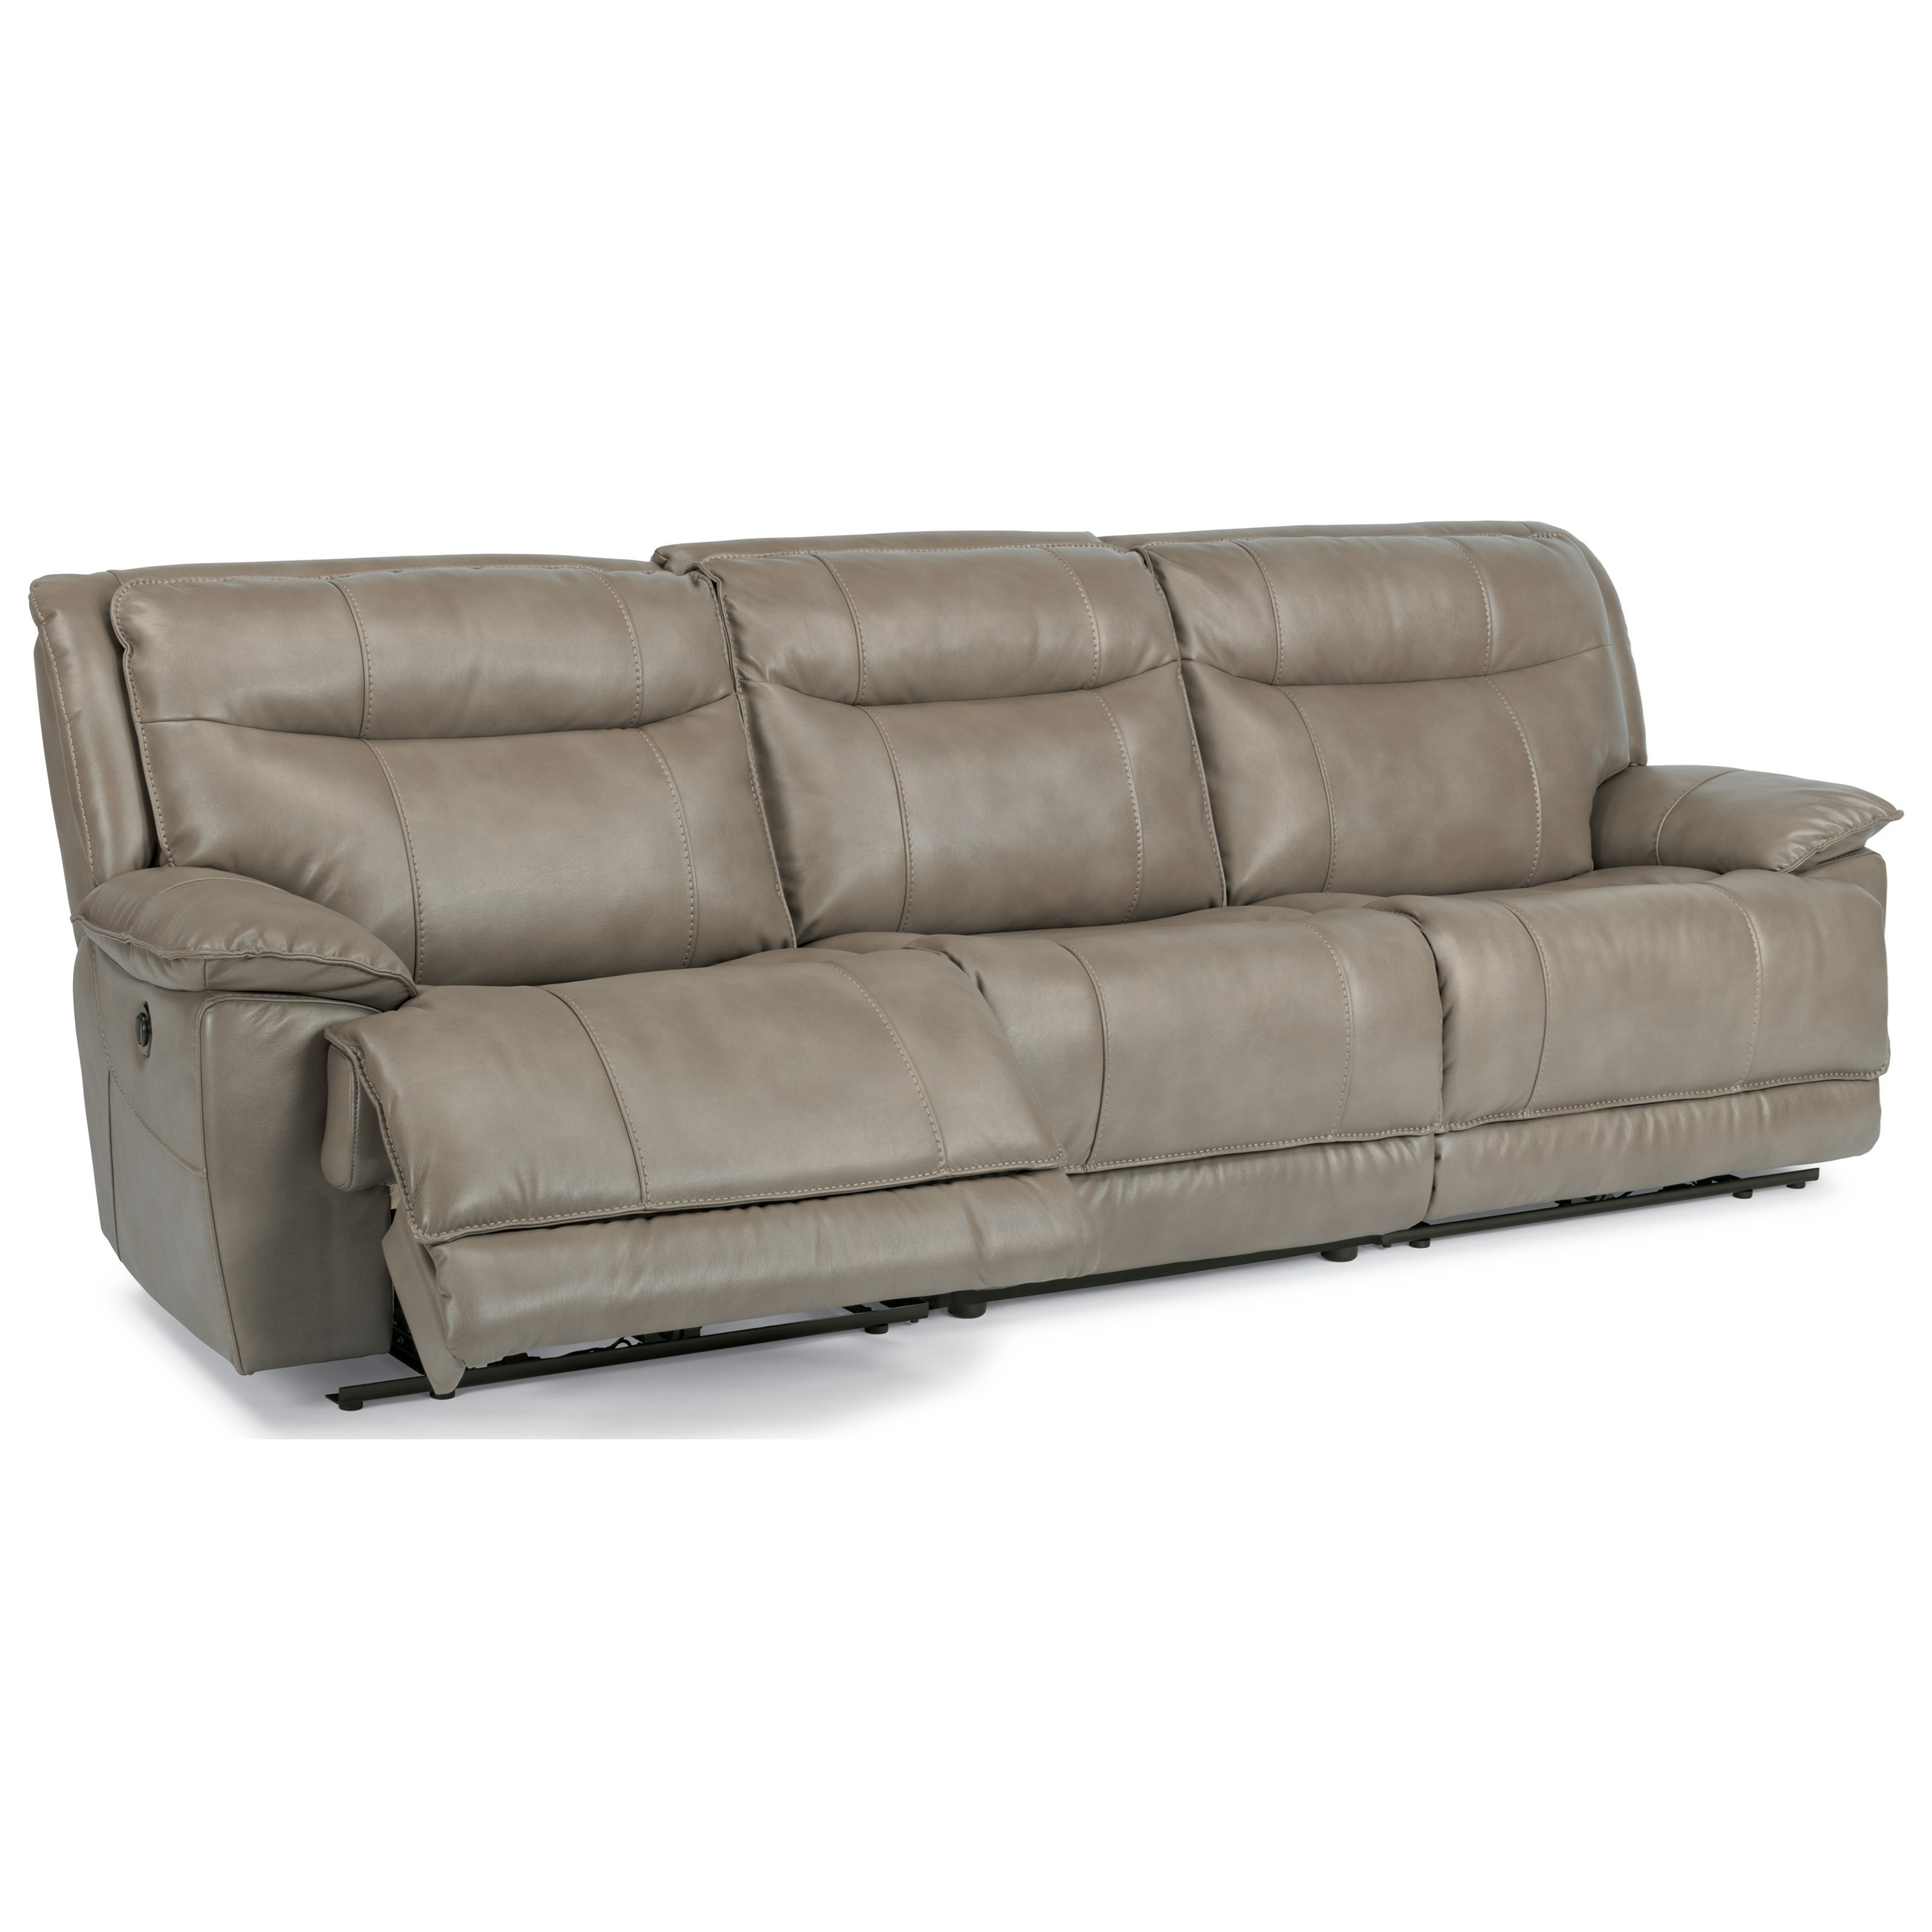 Flexsteel Latitudes-Bliss Three Piece Power Reclining Sectional Sofa - Dunk \u0026 Bright Furniture - Reclining Sectional Sofa  sc 1 st  Dunk \u0026 Bright Furniture : sectional couch recliner - islam-shia.org